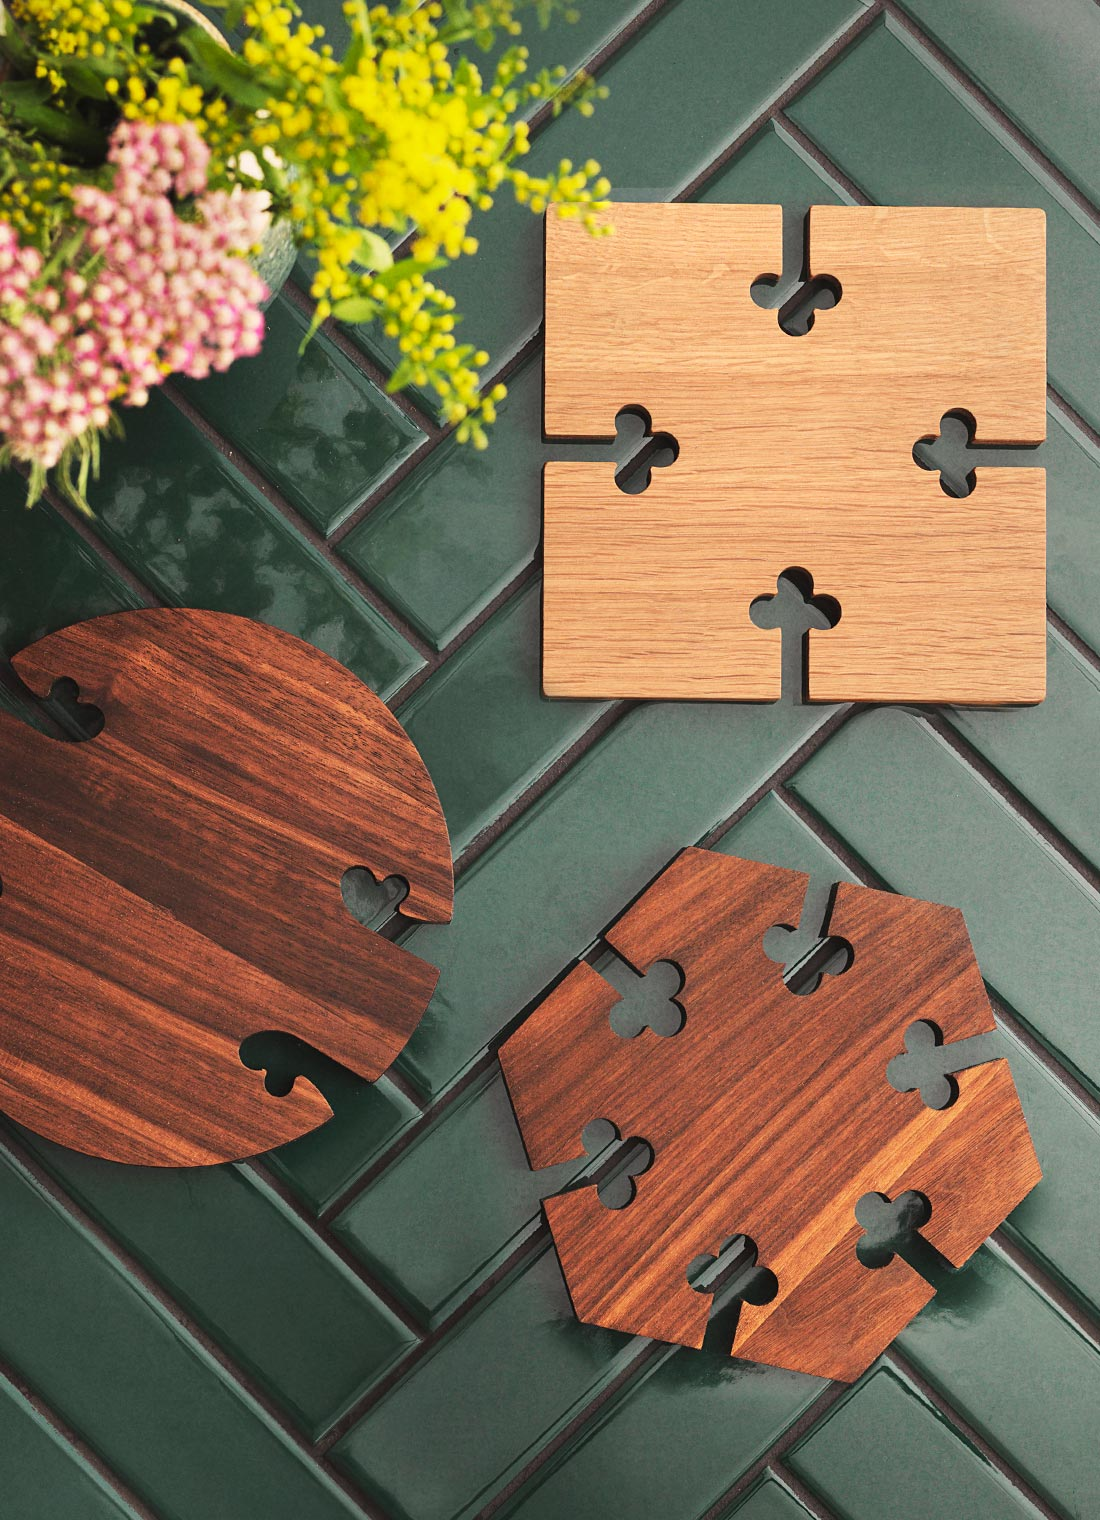 Gourmet wood trivets on a beatiful dining table